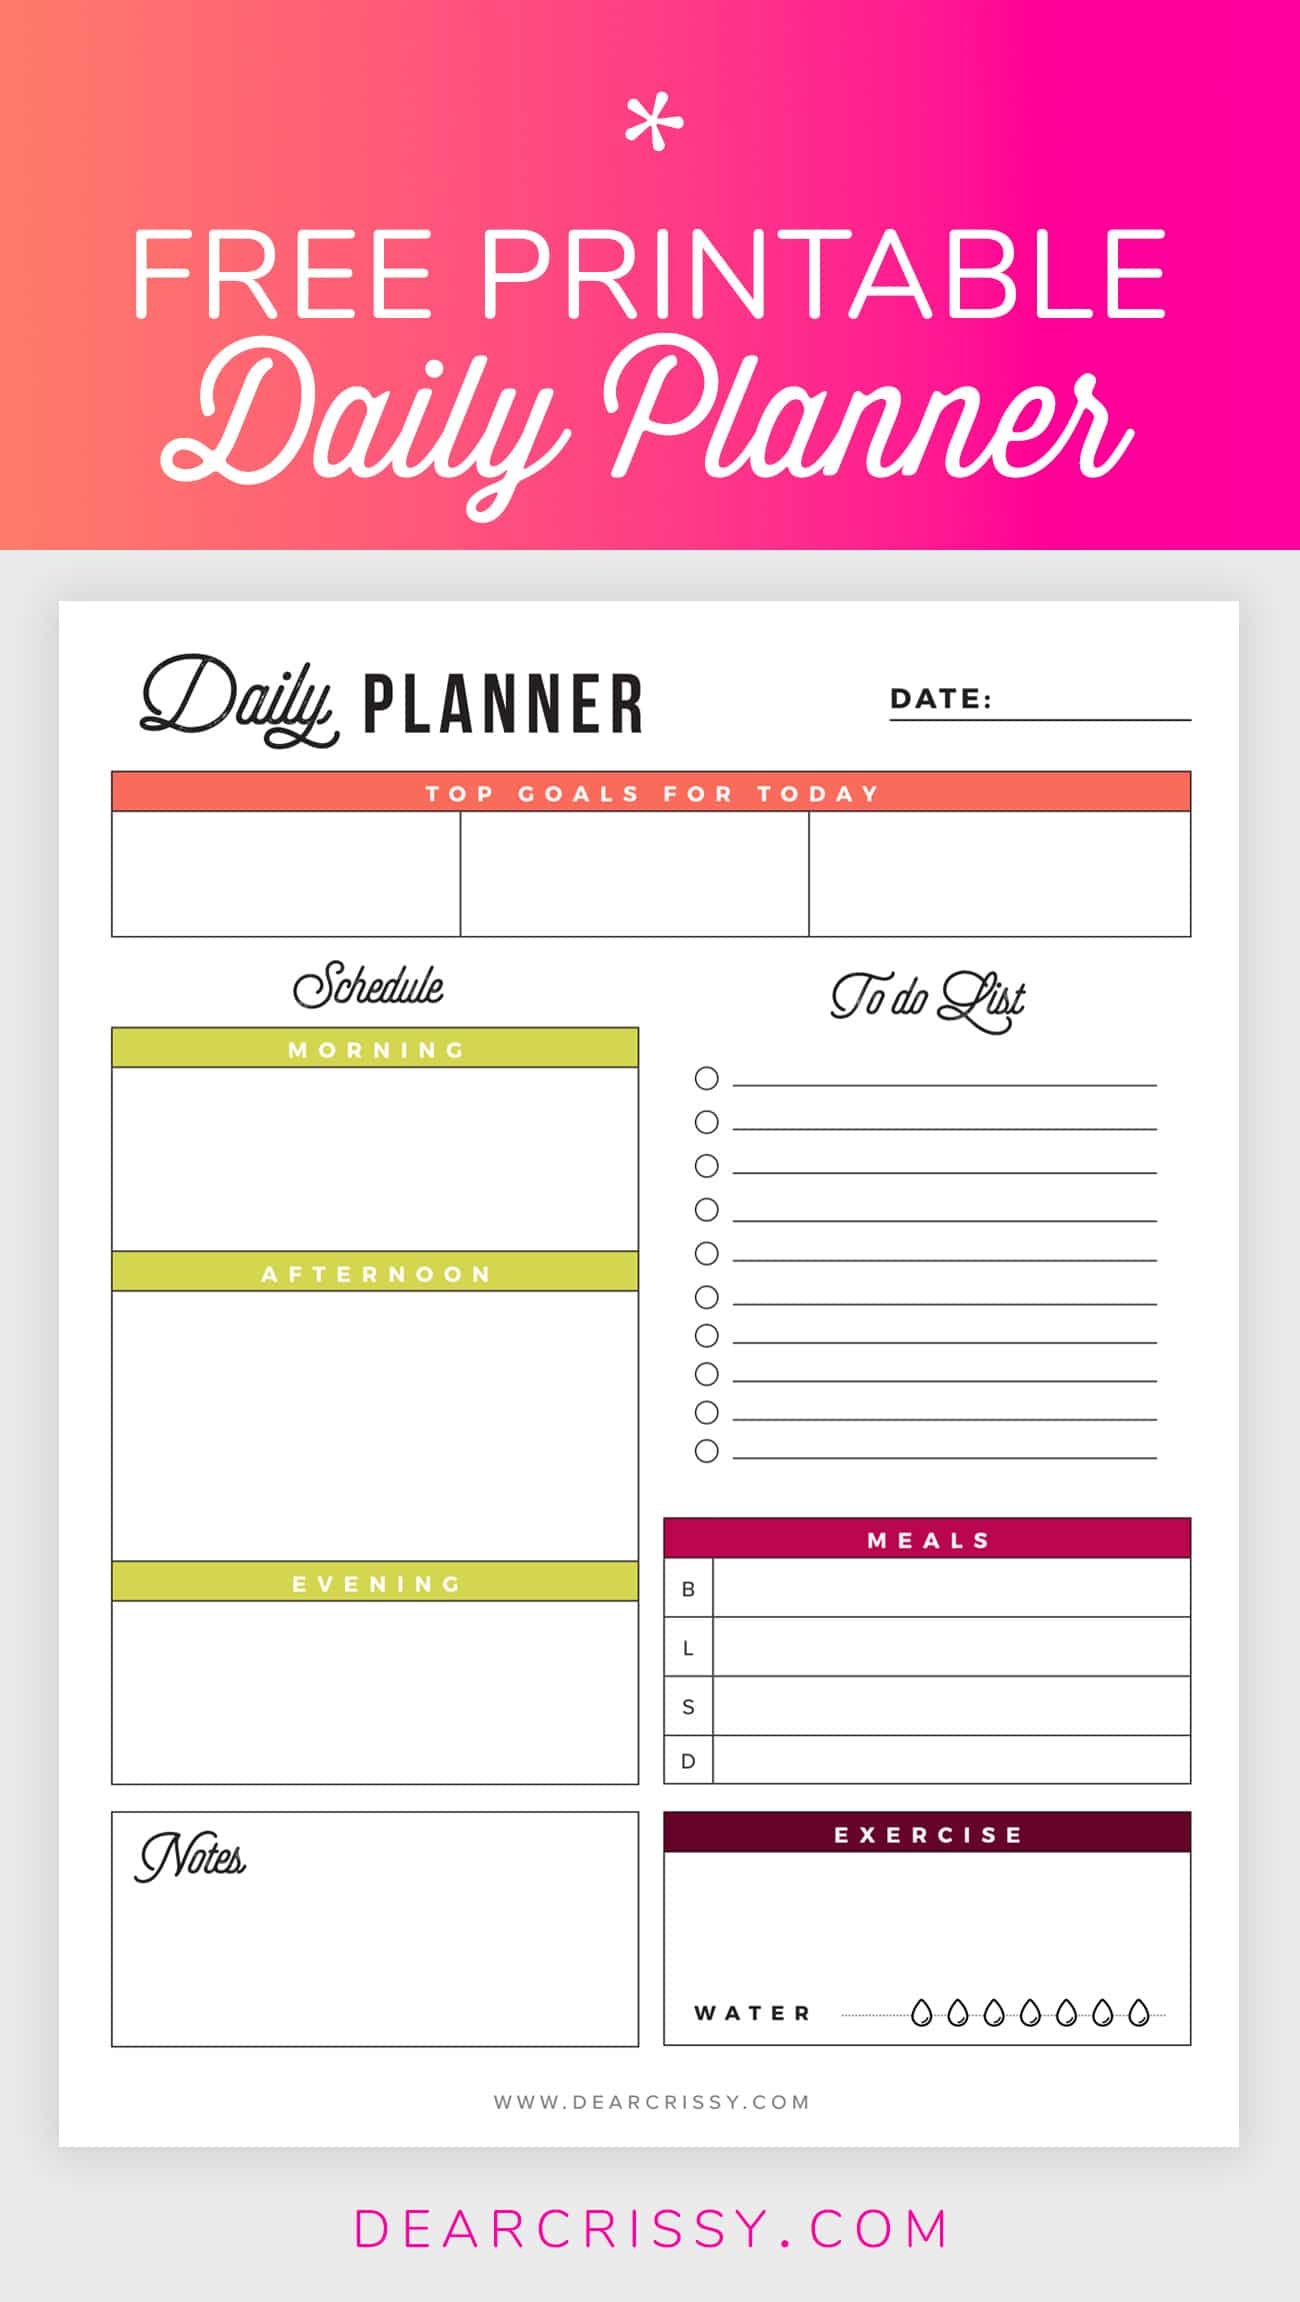 graphic about Daily Planner Printable named Free of charge Printable Day by day Planner - Aims, Toward-Do, Health, H2o